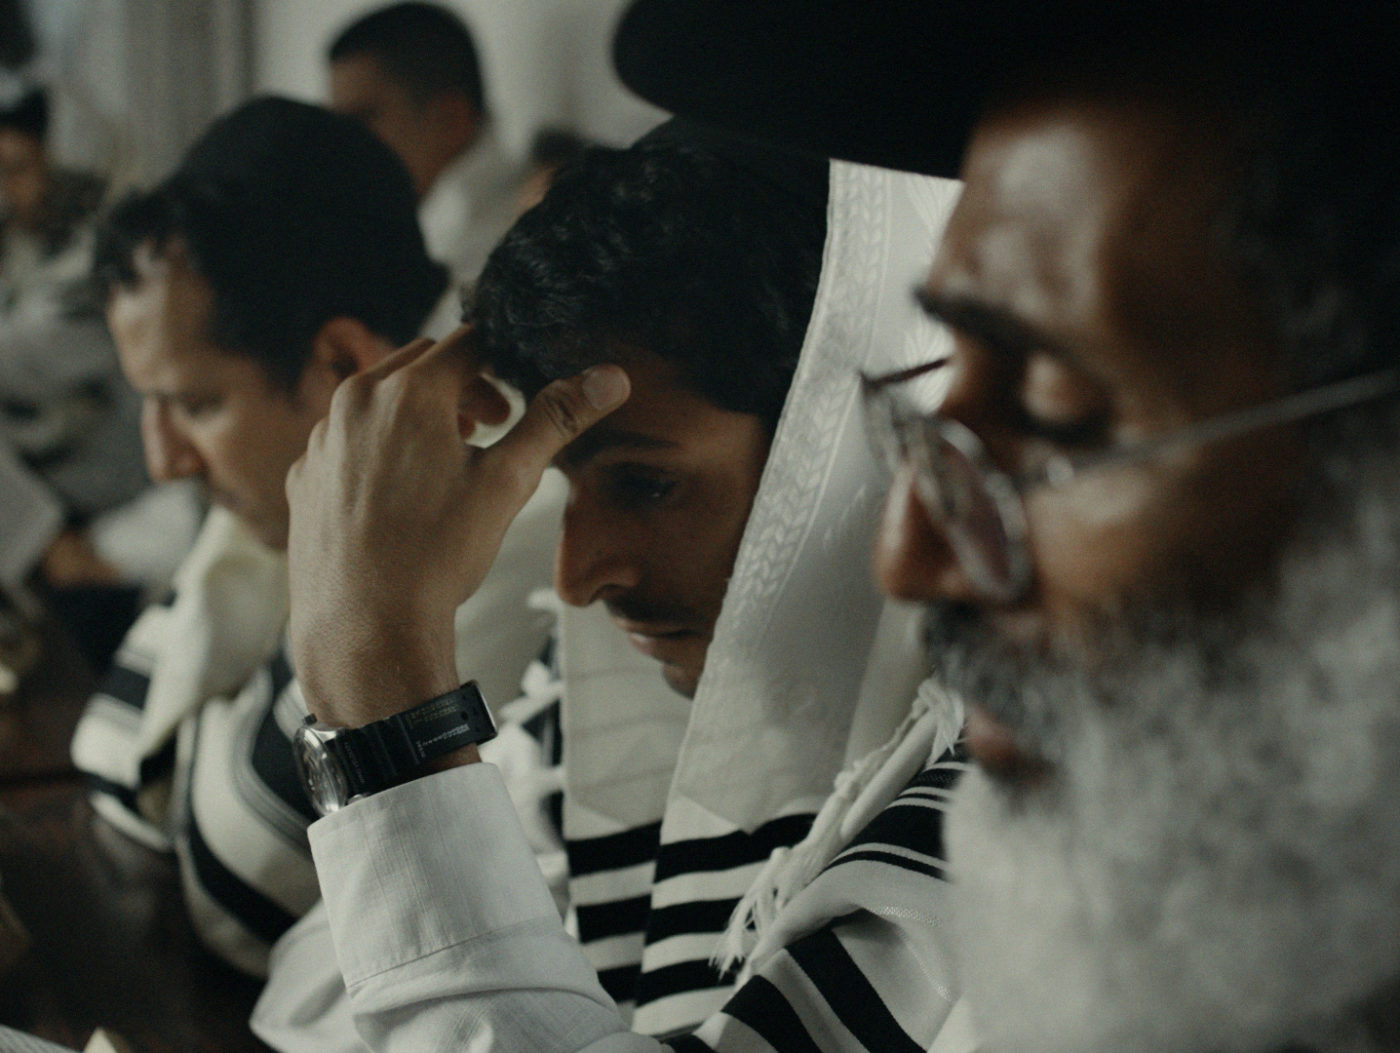 A still frame from Yaron Zilberman's film